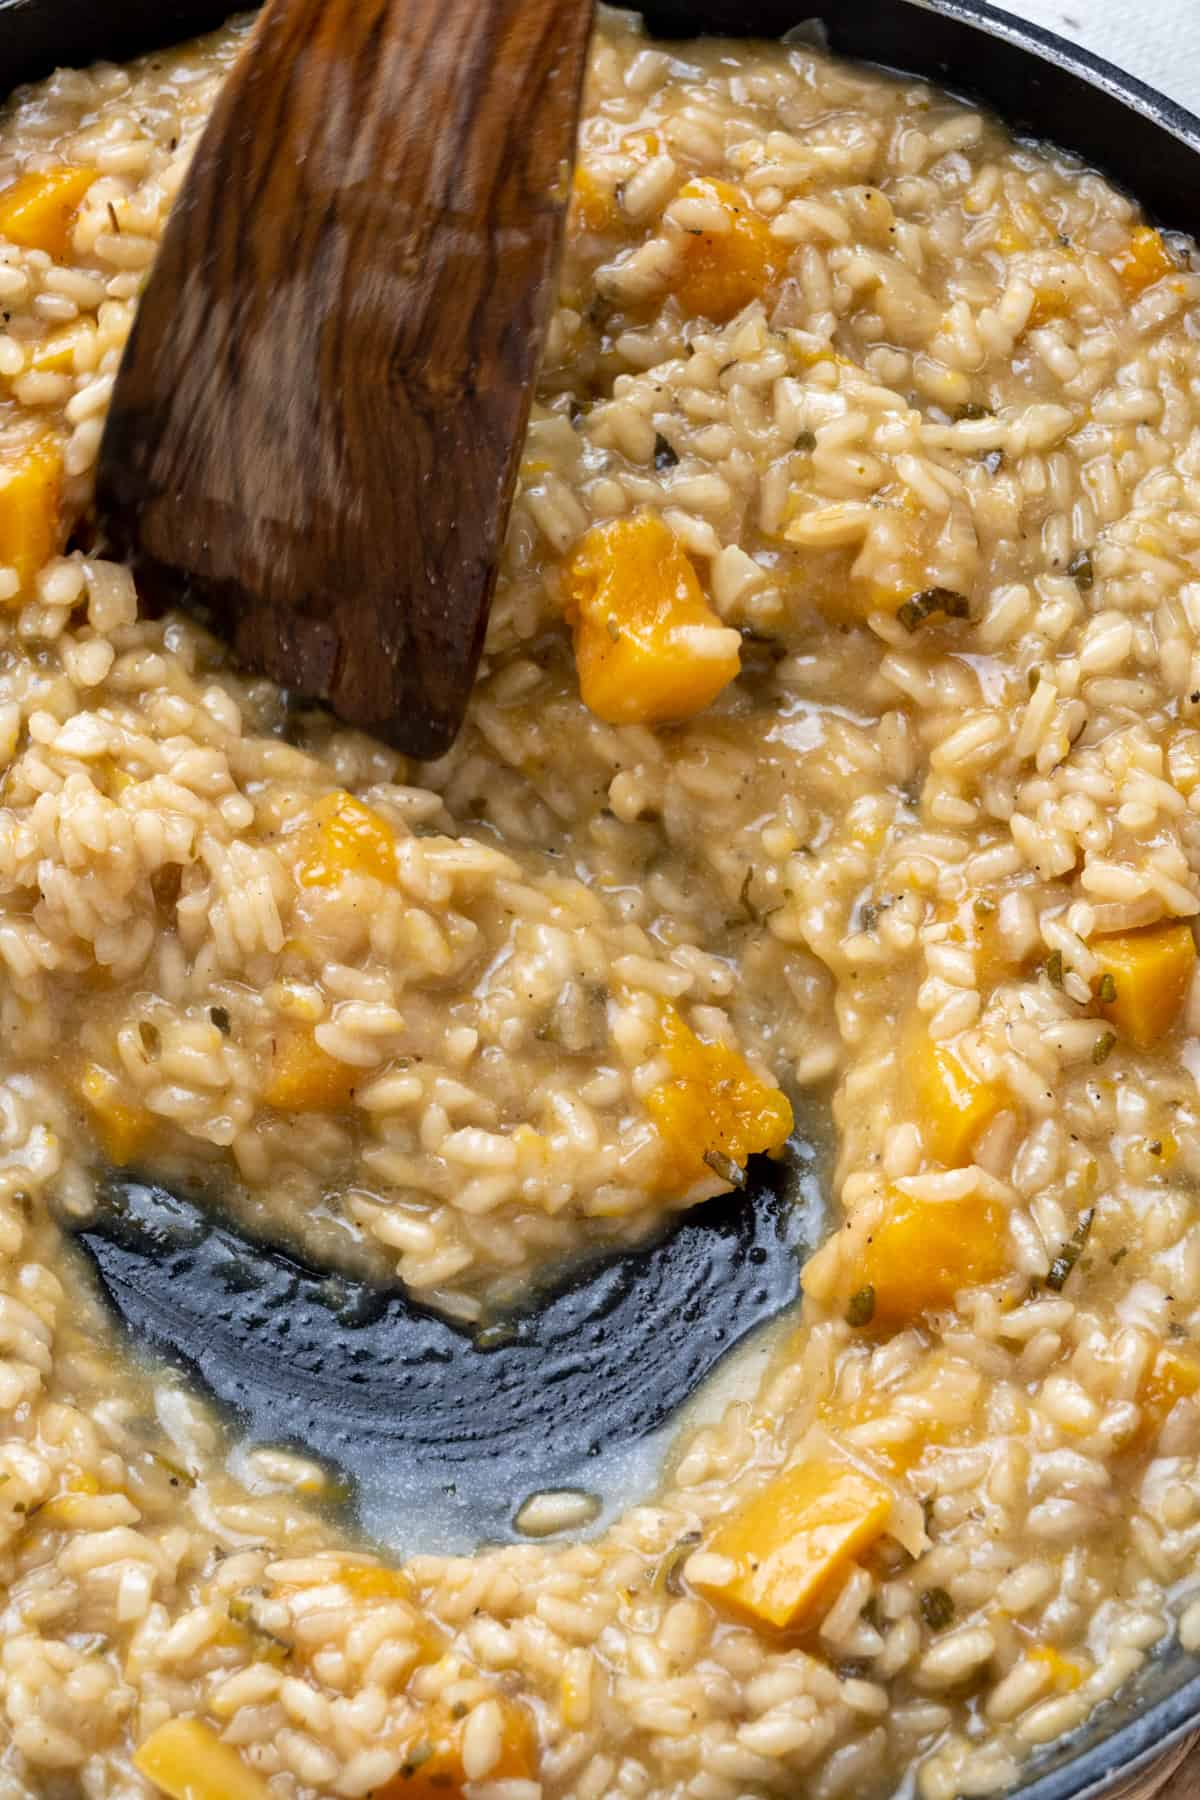 A spatula stirs the finished risotto, showing the creamy texture.